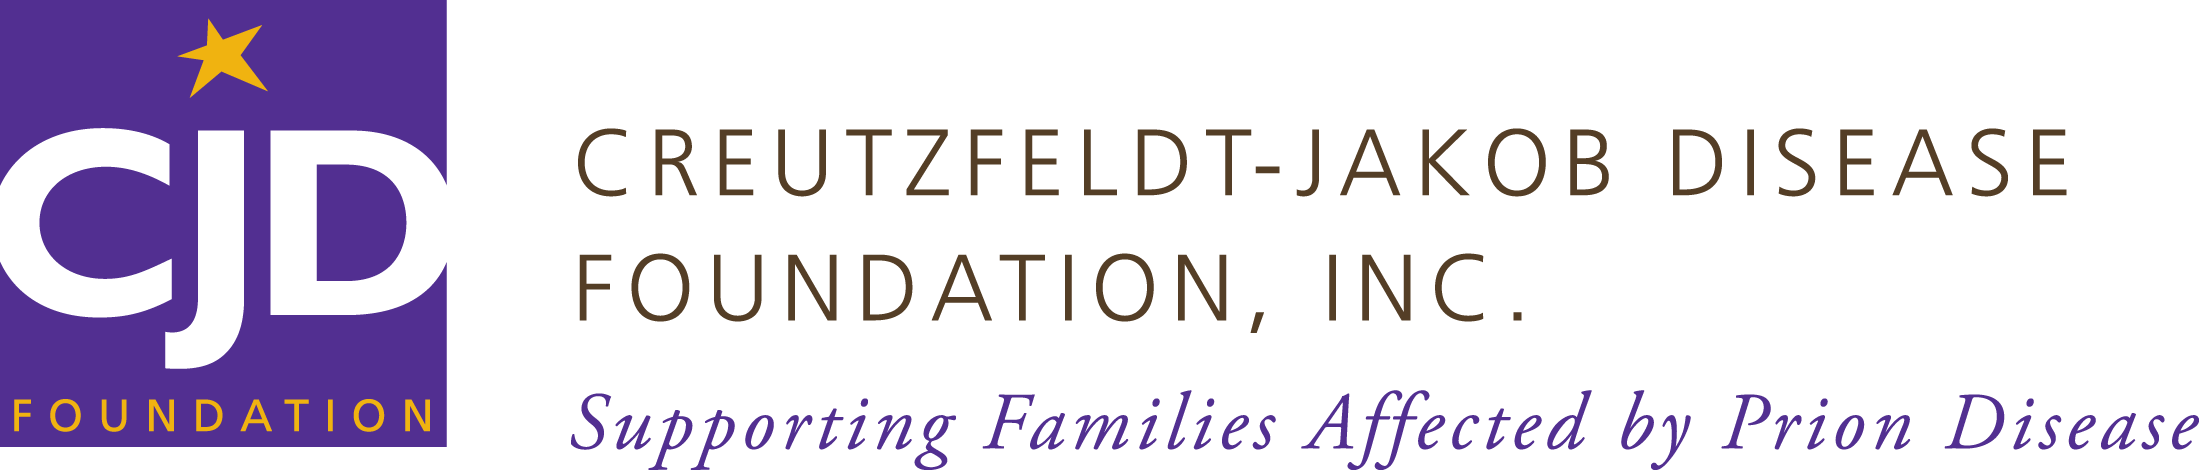 Frequently Asked Questions Creutzfeldt Jakob Disease Foundation